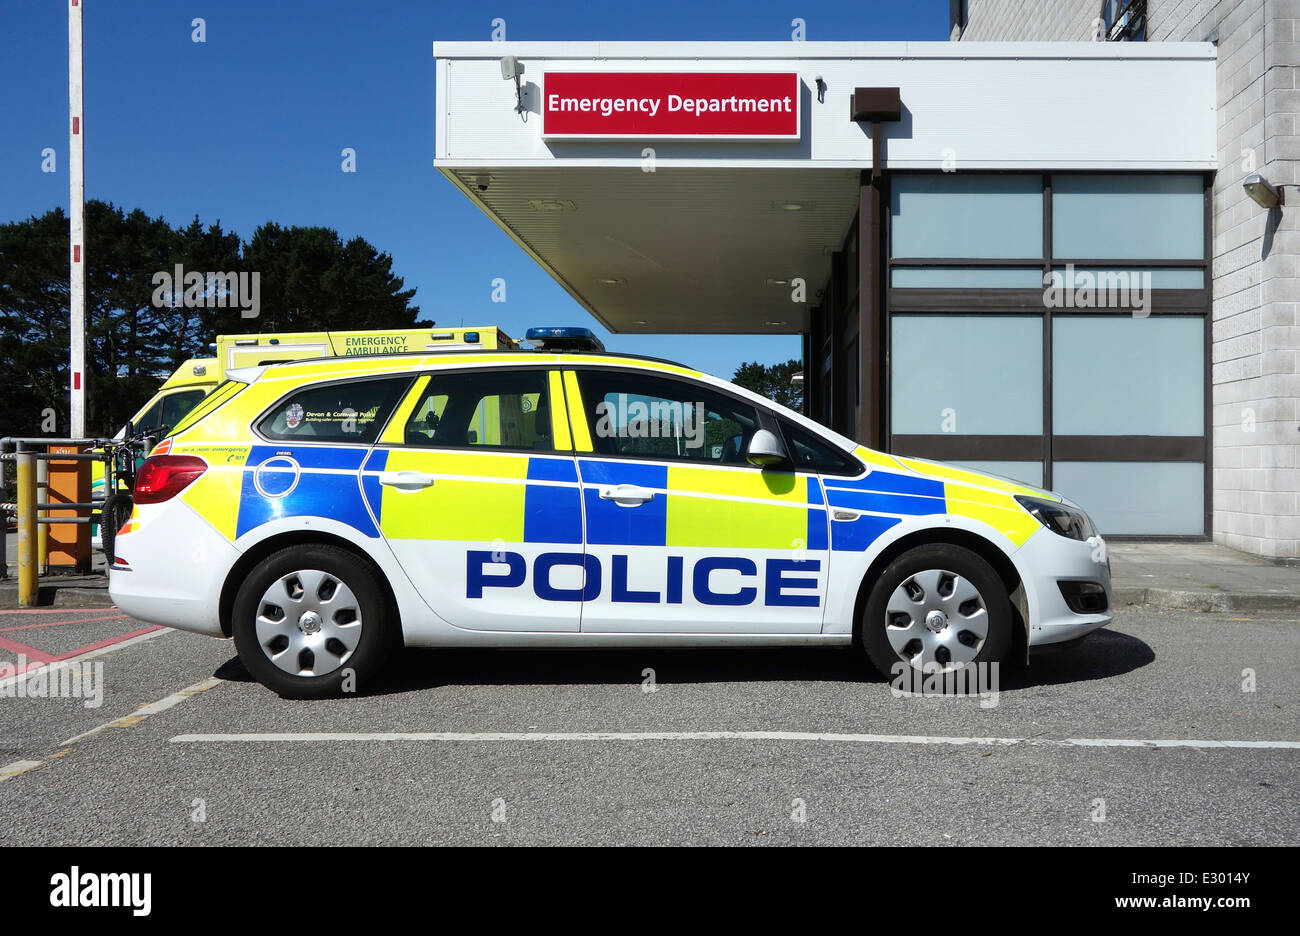 A police car parked outside the accident & emergency department at the Royal Cornwall Hospital in Truro, Cornwall, - Stock Image